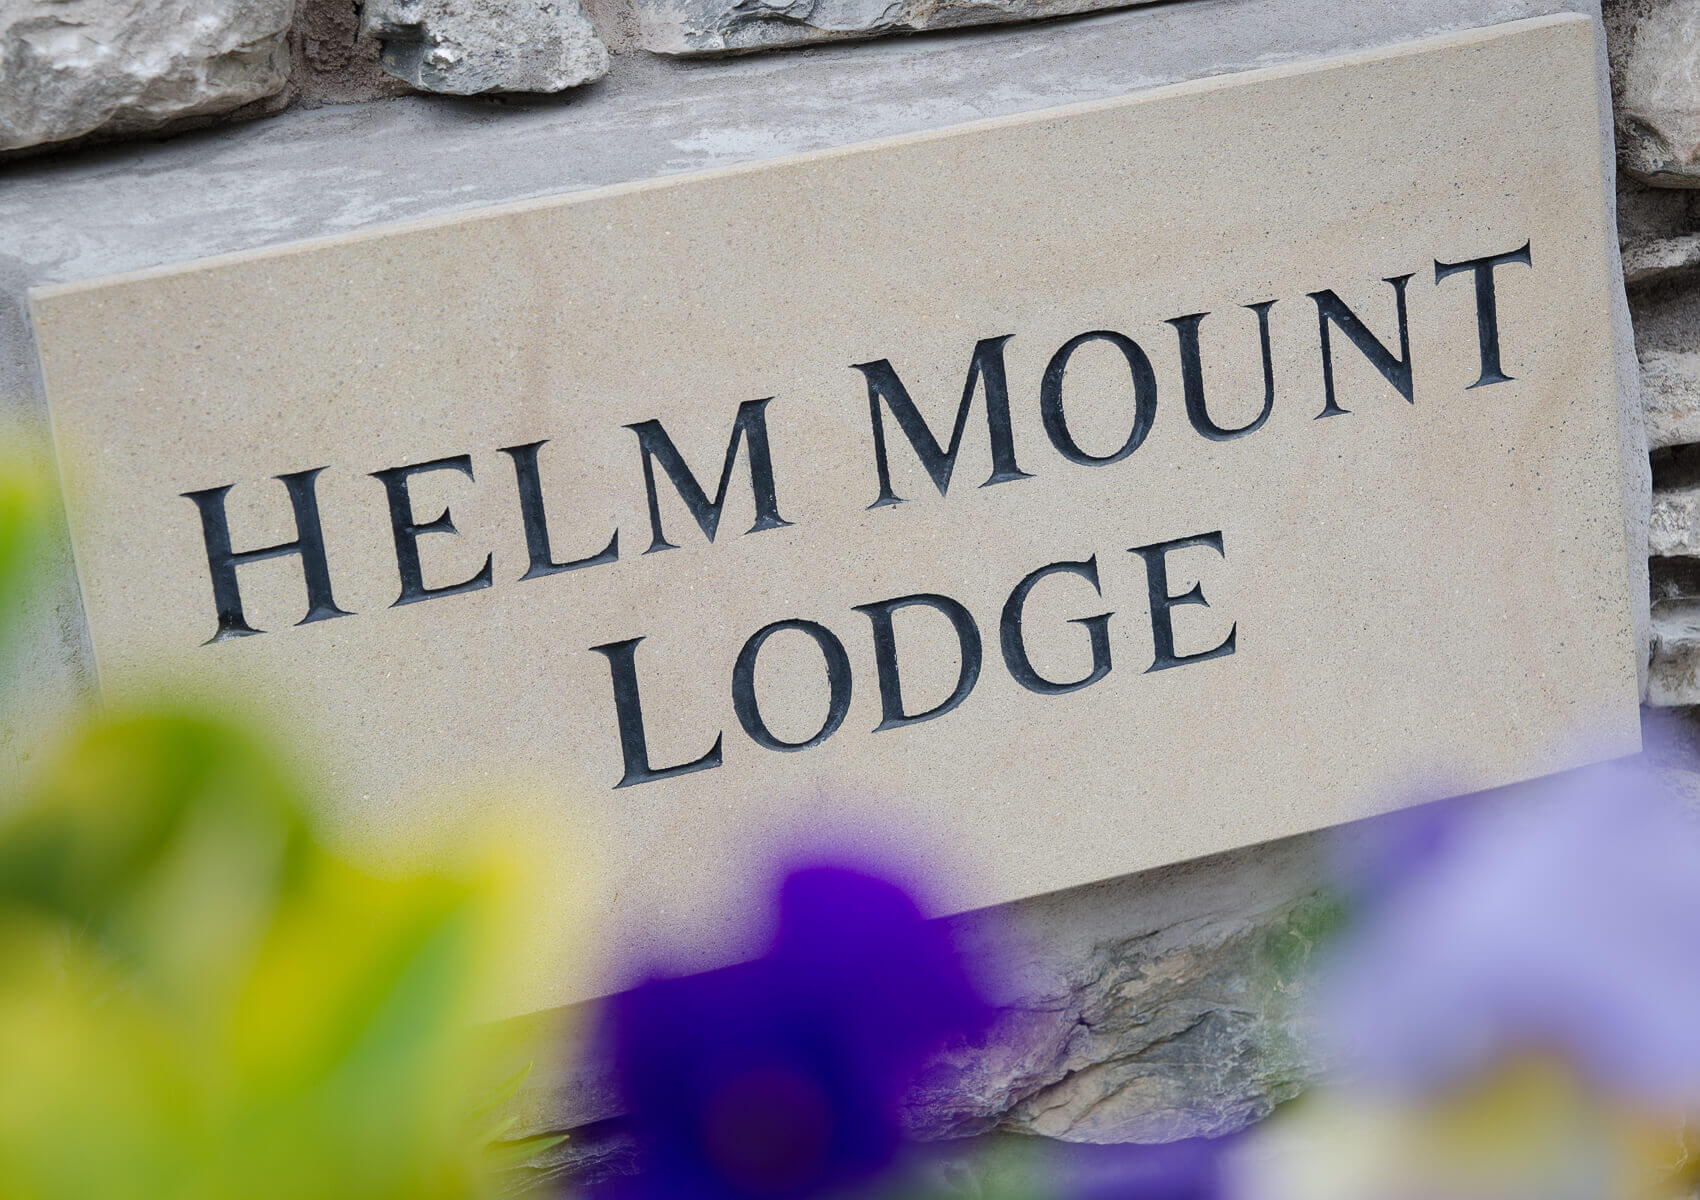 Helm Mount Lodge